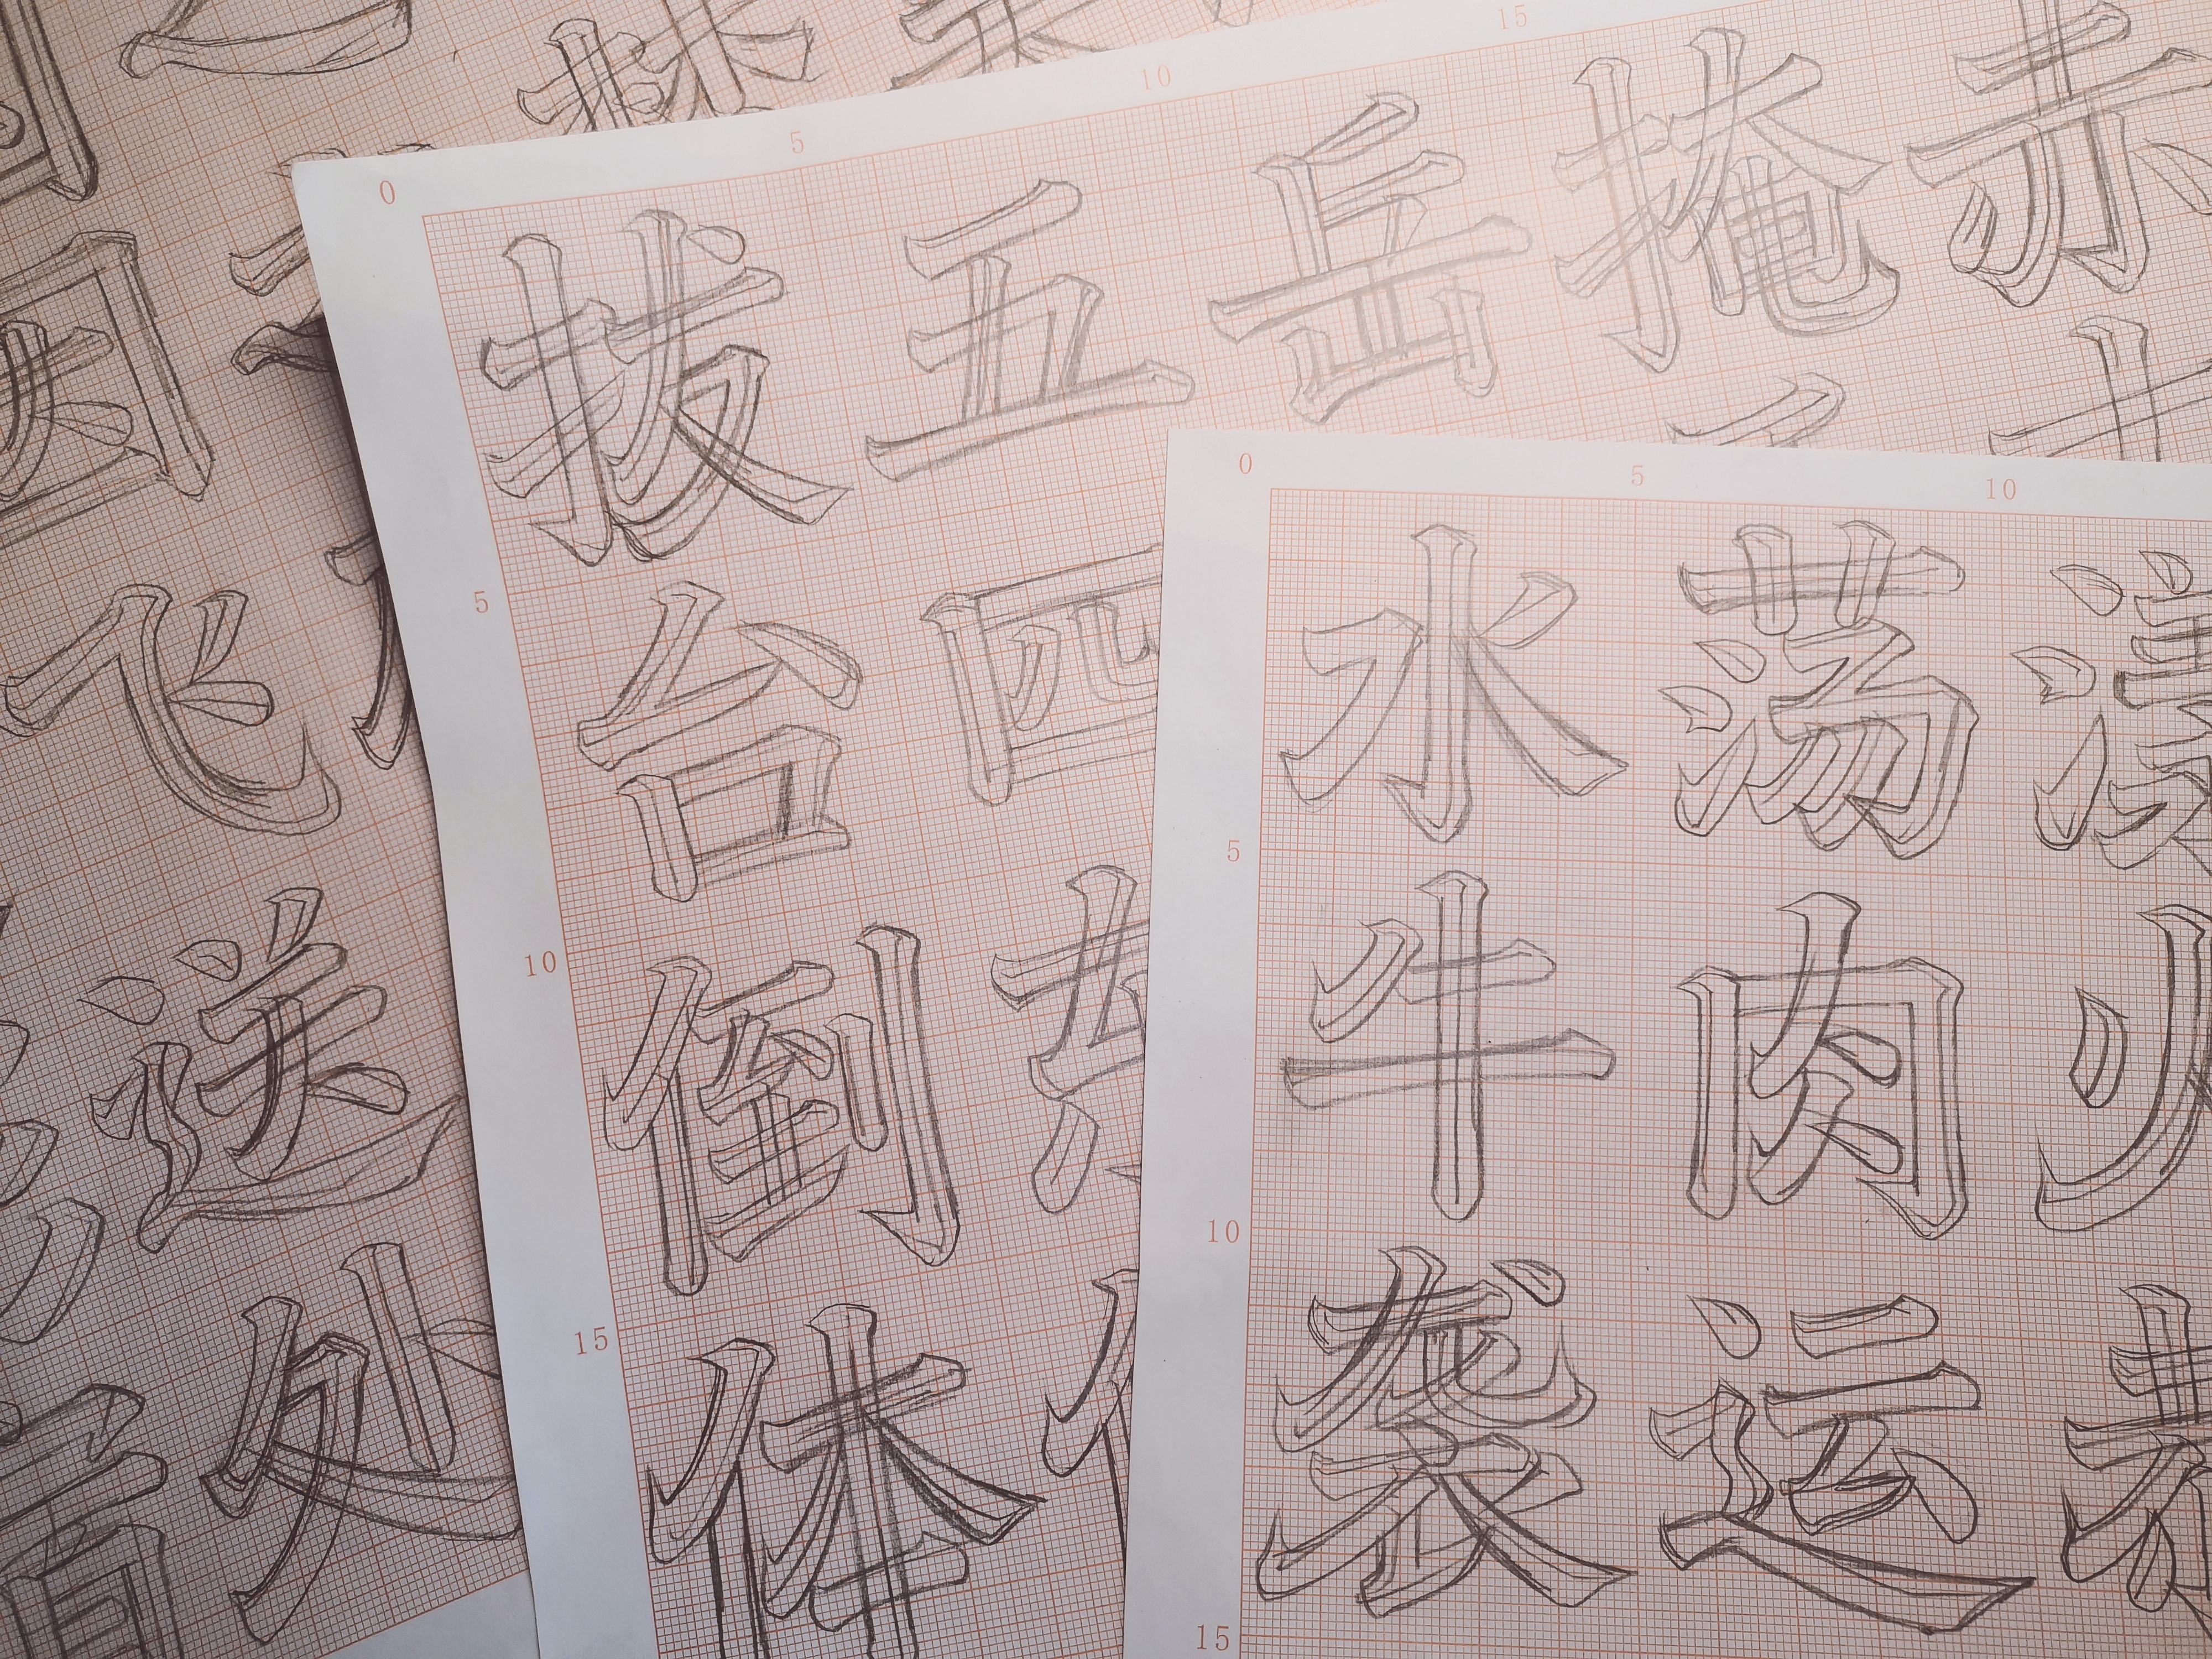 Incorporate ancient and modern Chinese regular script design